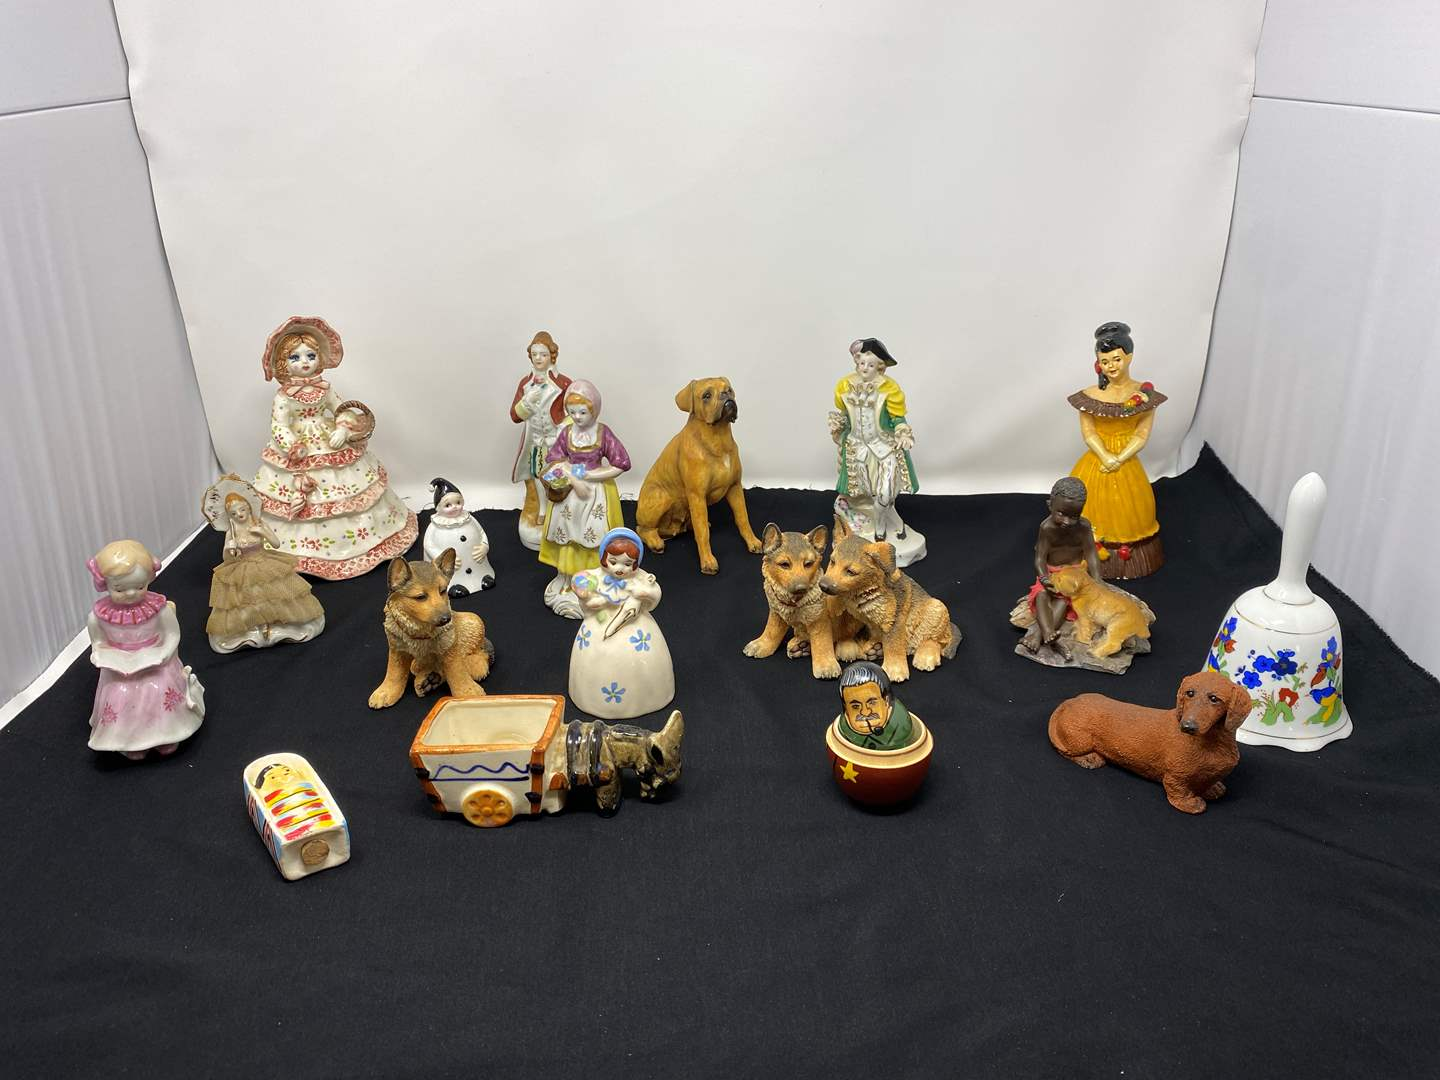 Lot # 53 - Collection of Vintage/Antique Figurines (main image)